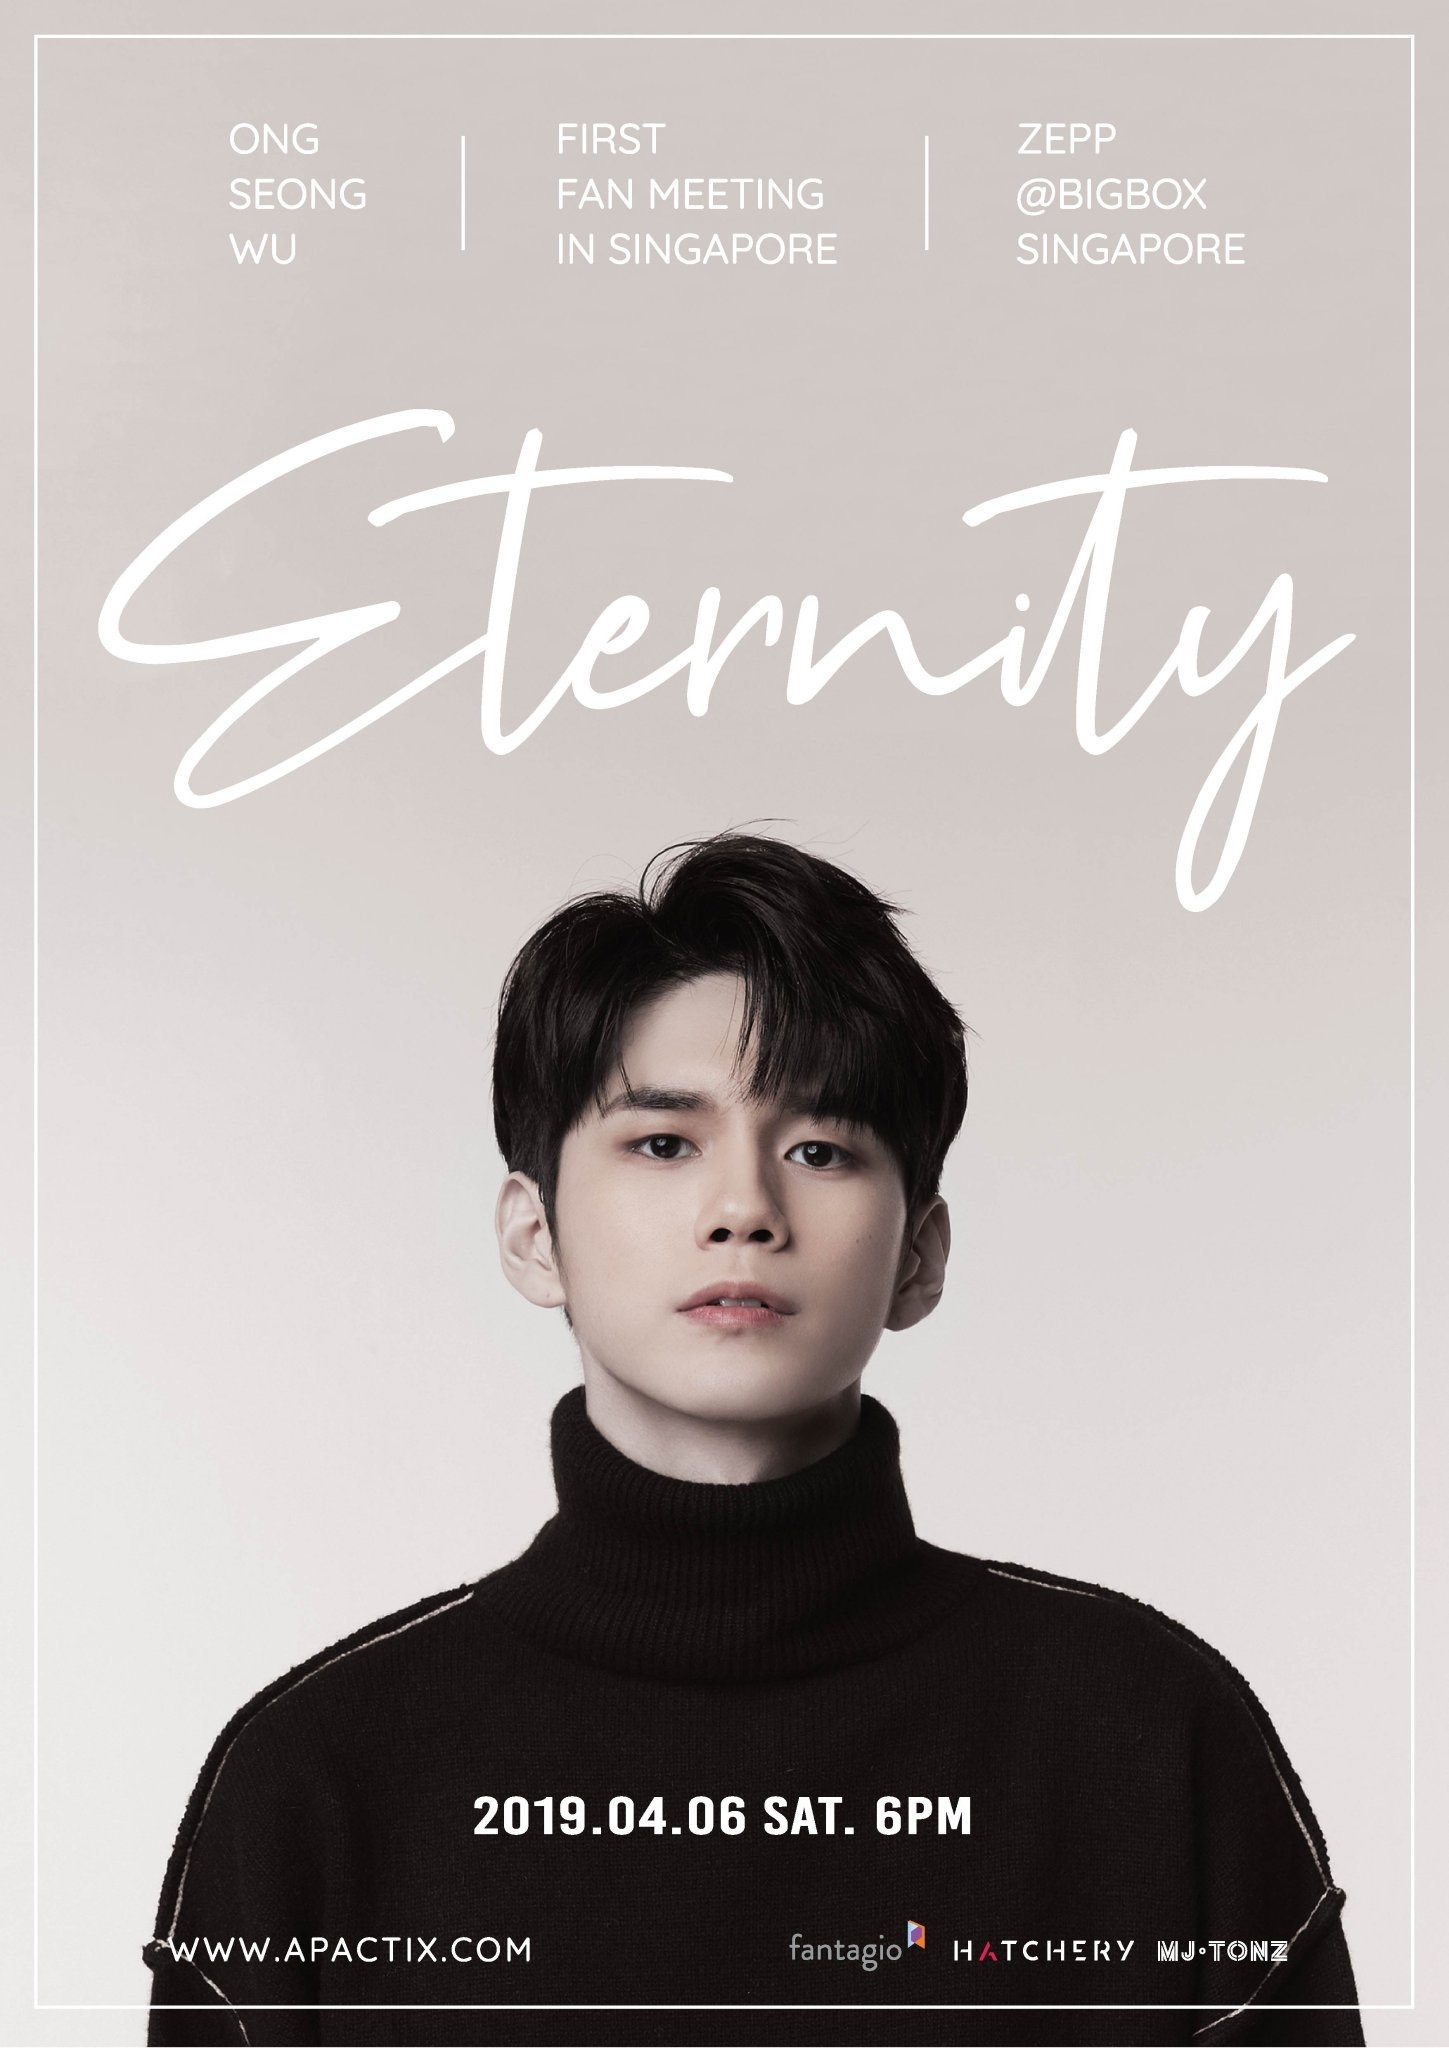 Ong Seong Wu Announces 'Eternity' First Fan Meeting in Singapore